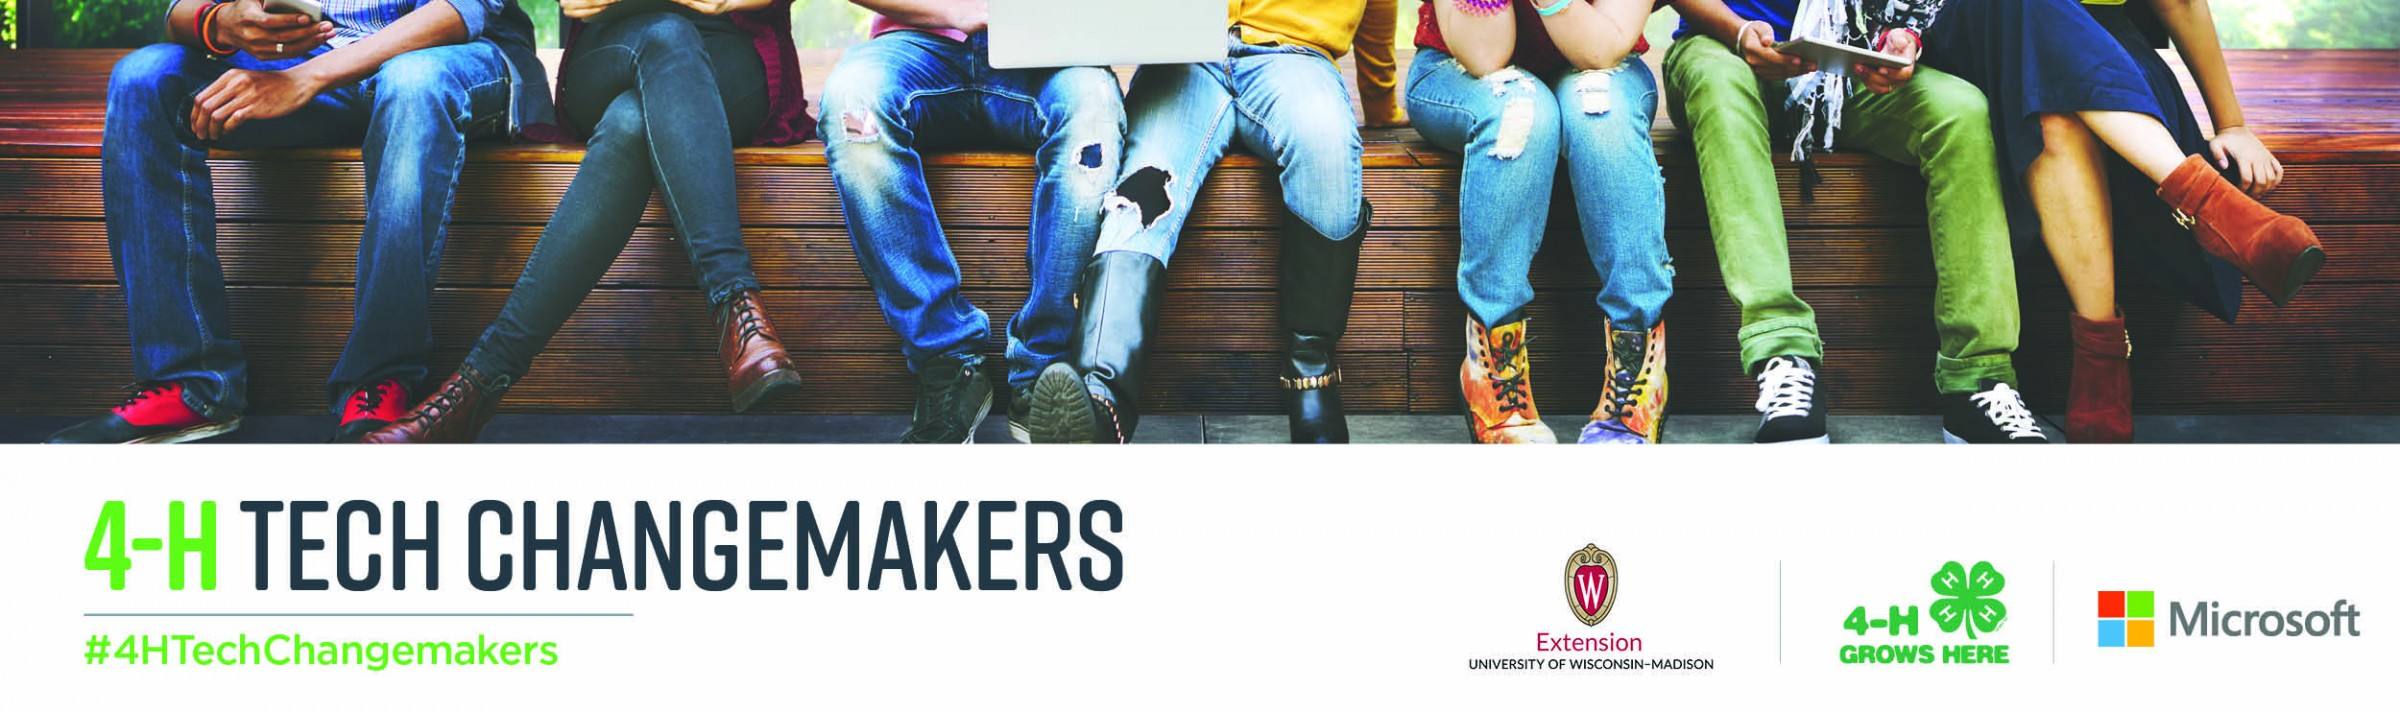 Register for 4-H Tech Changemakers Forest County!